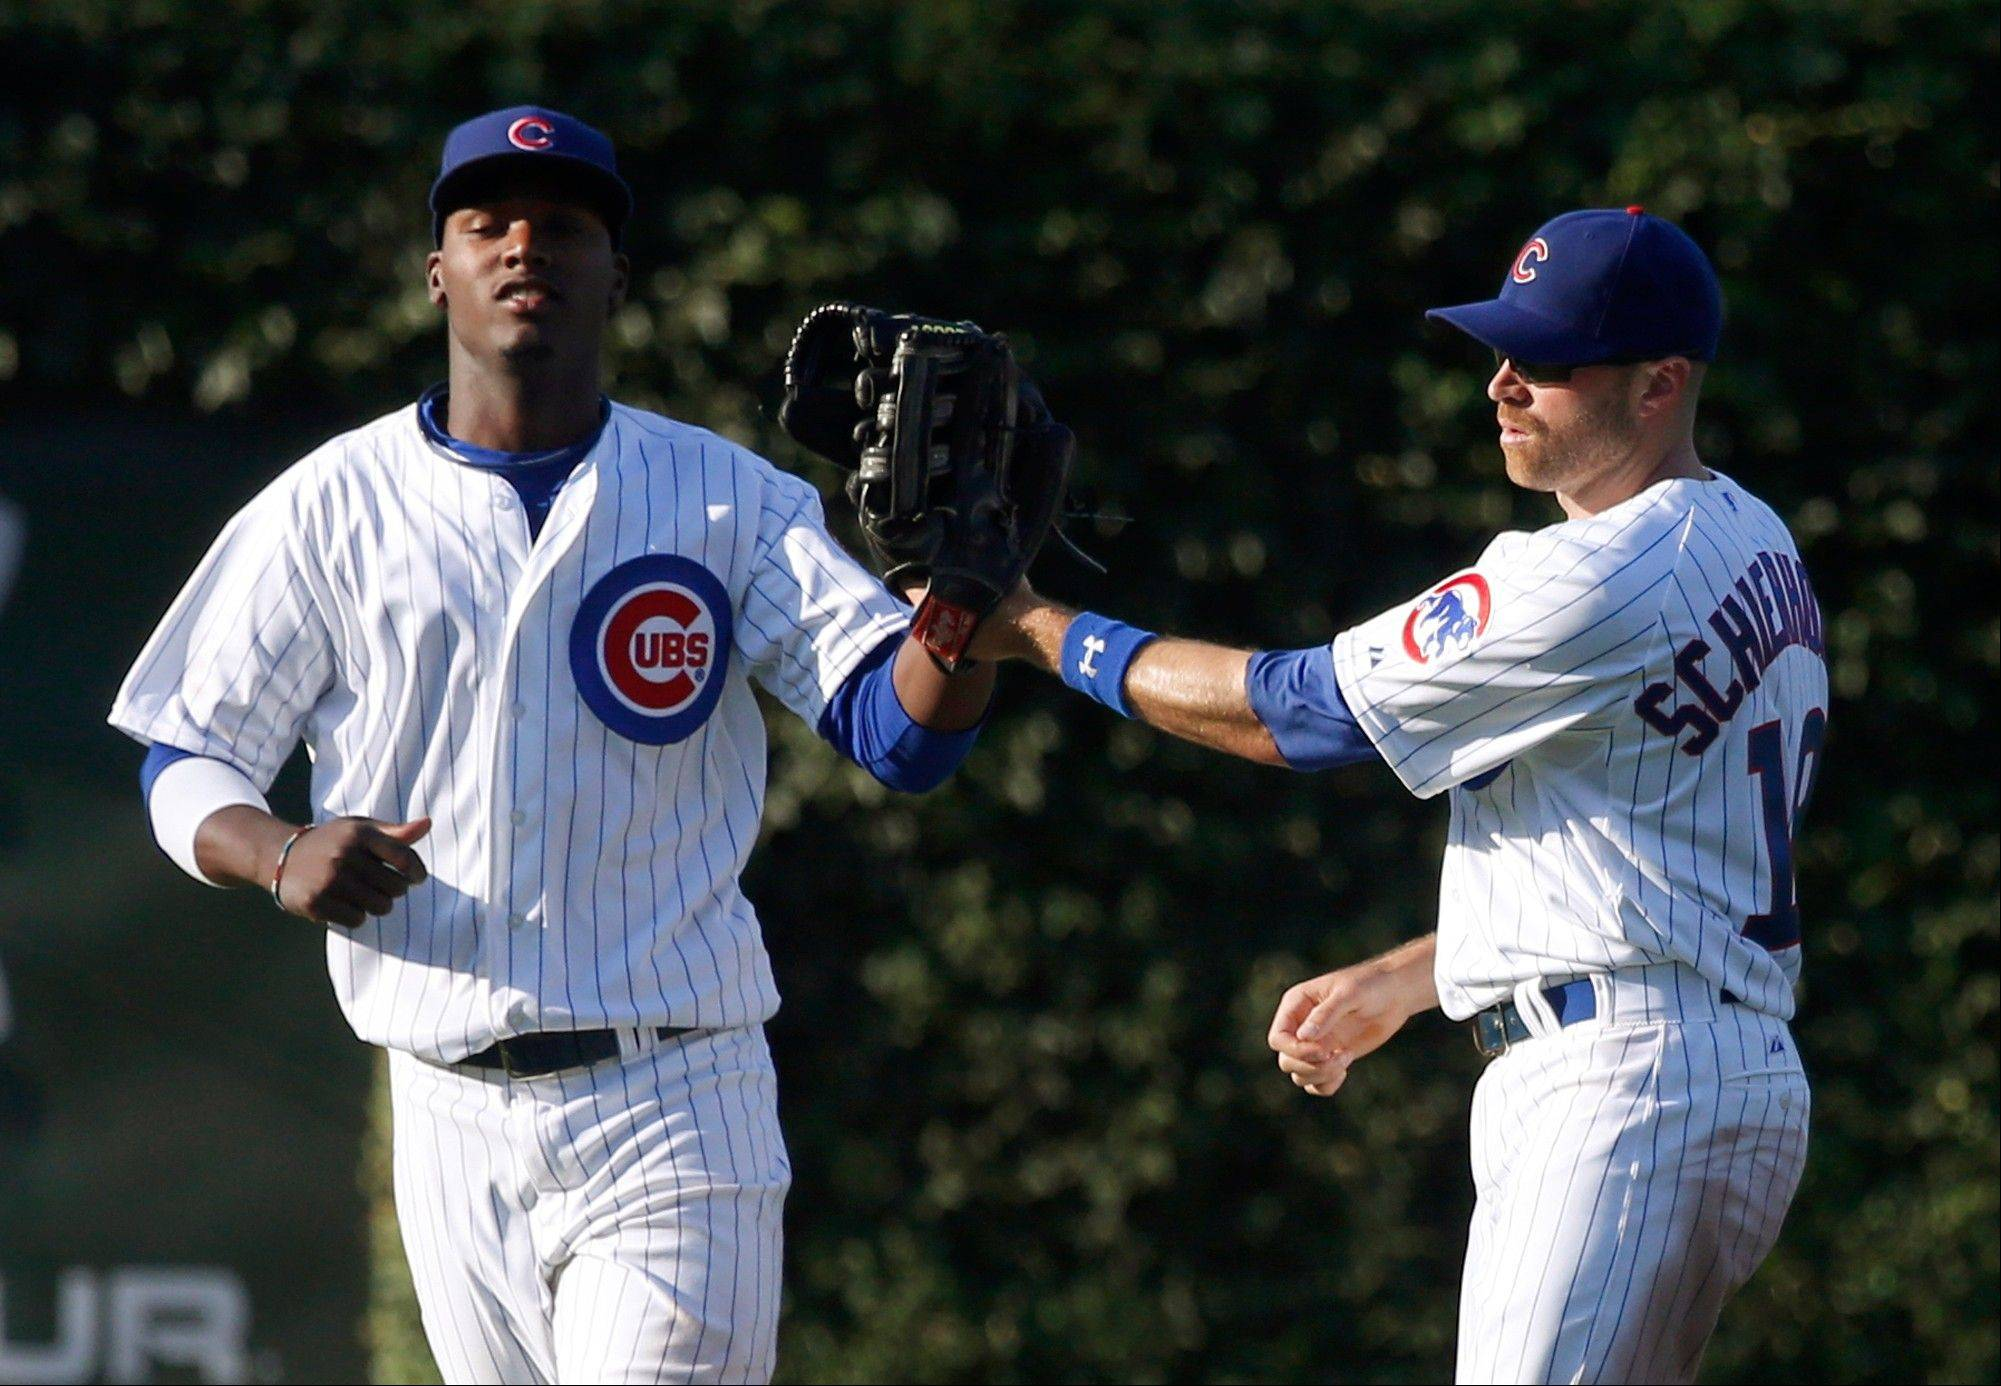 Cubs left fielder Junior Lake, left, and right fielder Nate Schierholtz celebrate the Cubs� 7-0 win over the St. Louis Cardinals in a baseball game Friday, Aug. 16, 2013, in Chicago.